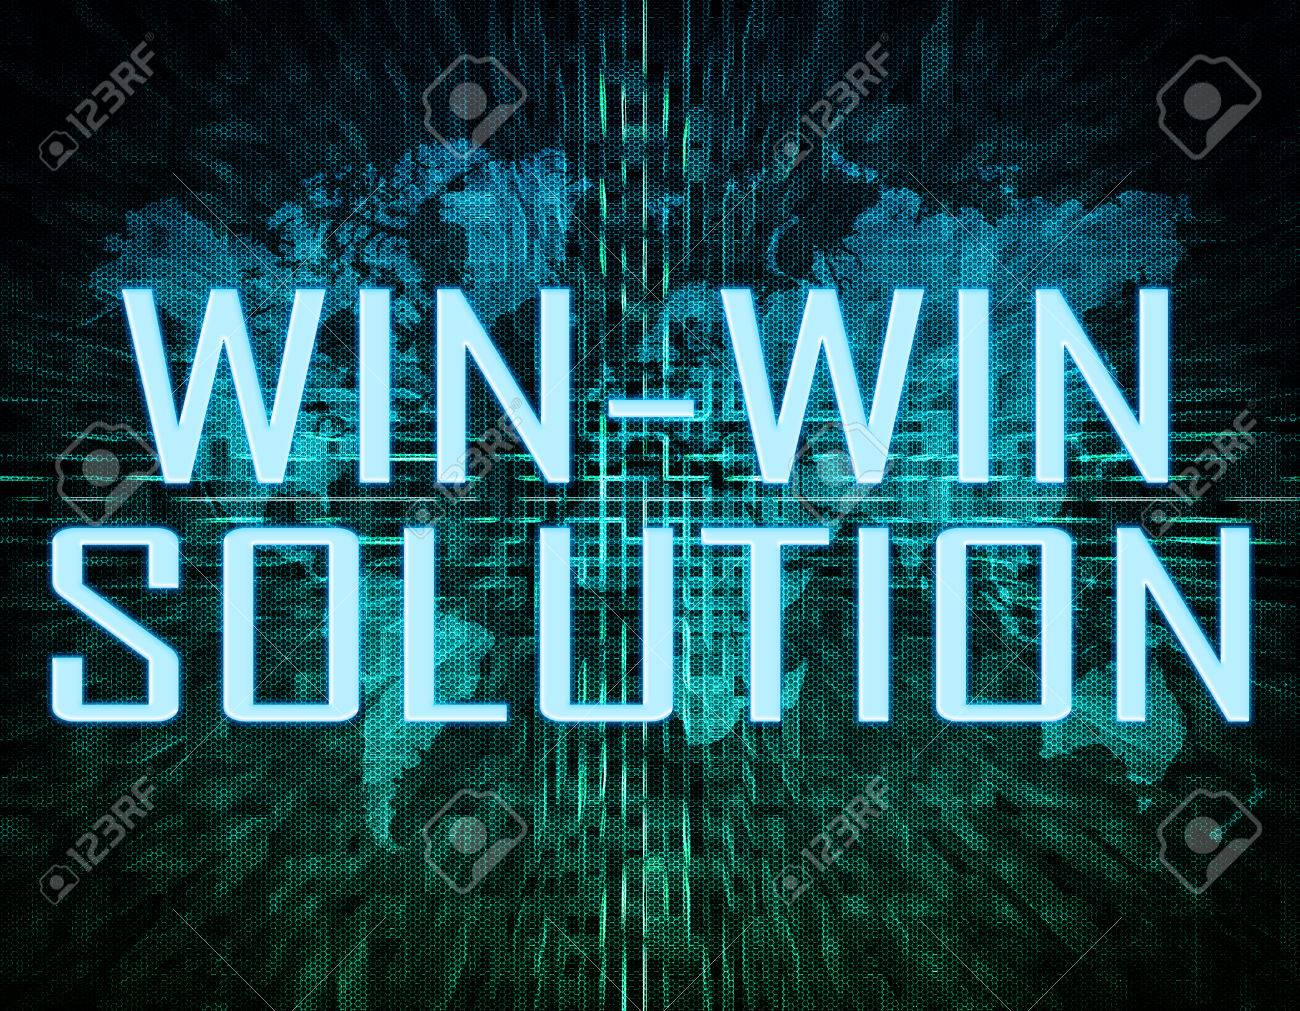 Win win solution text concept on green digital world map background stock photo win win solution text concept on green digital world map background gumiabroncs Images